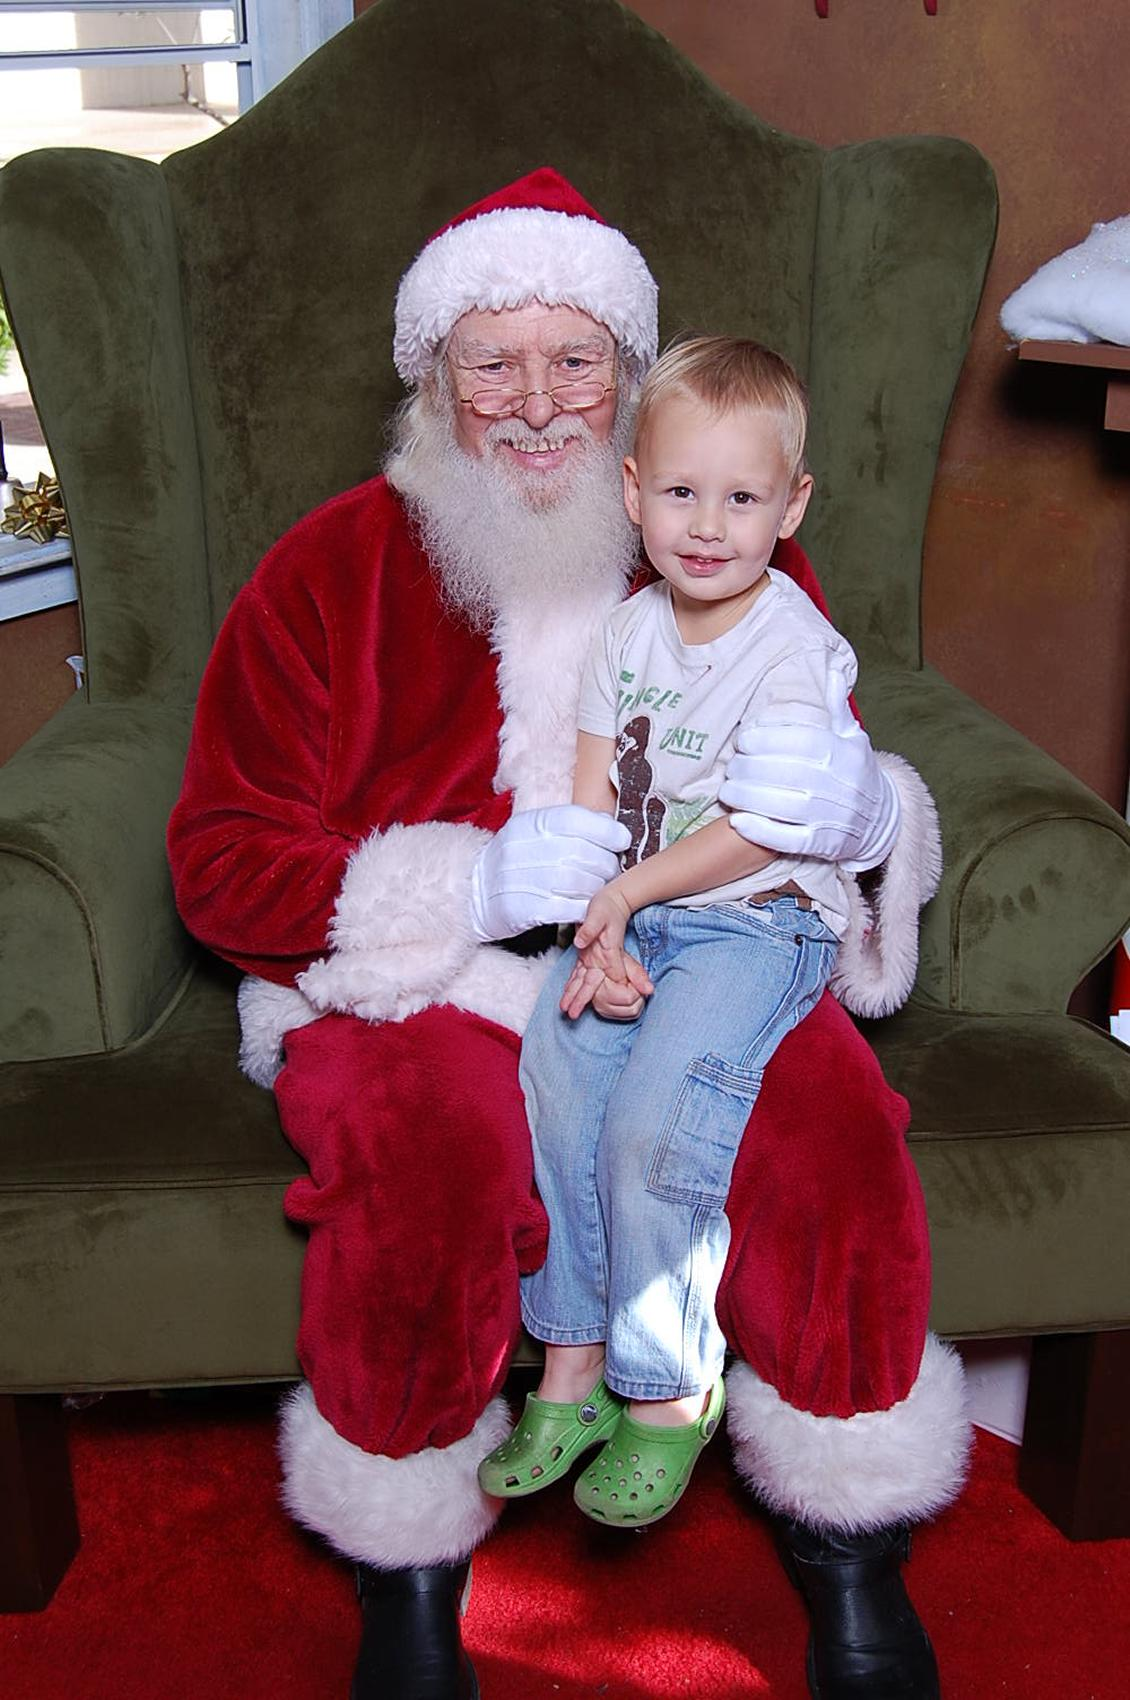 Sam hanging out with Santa